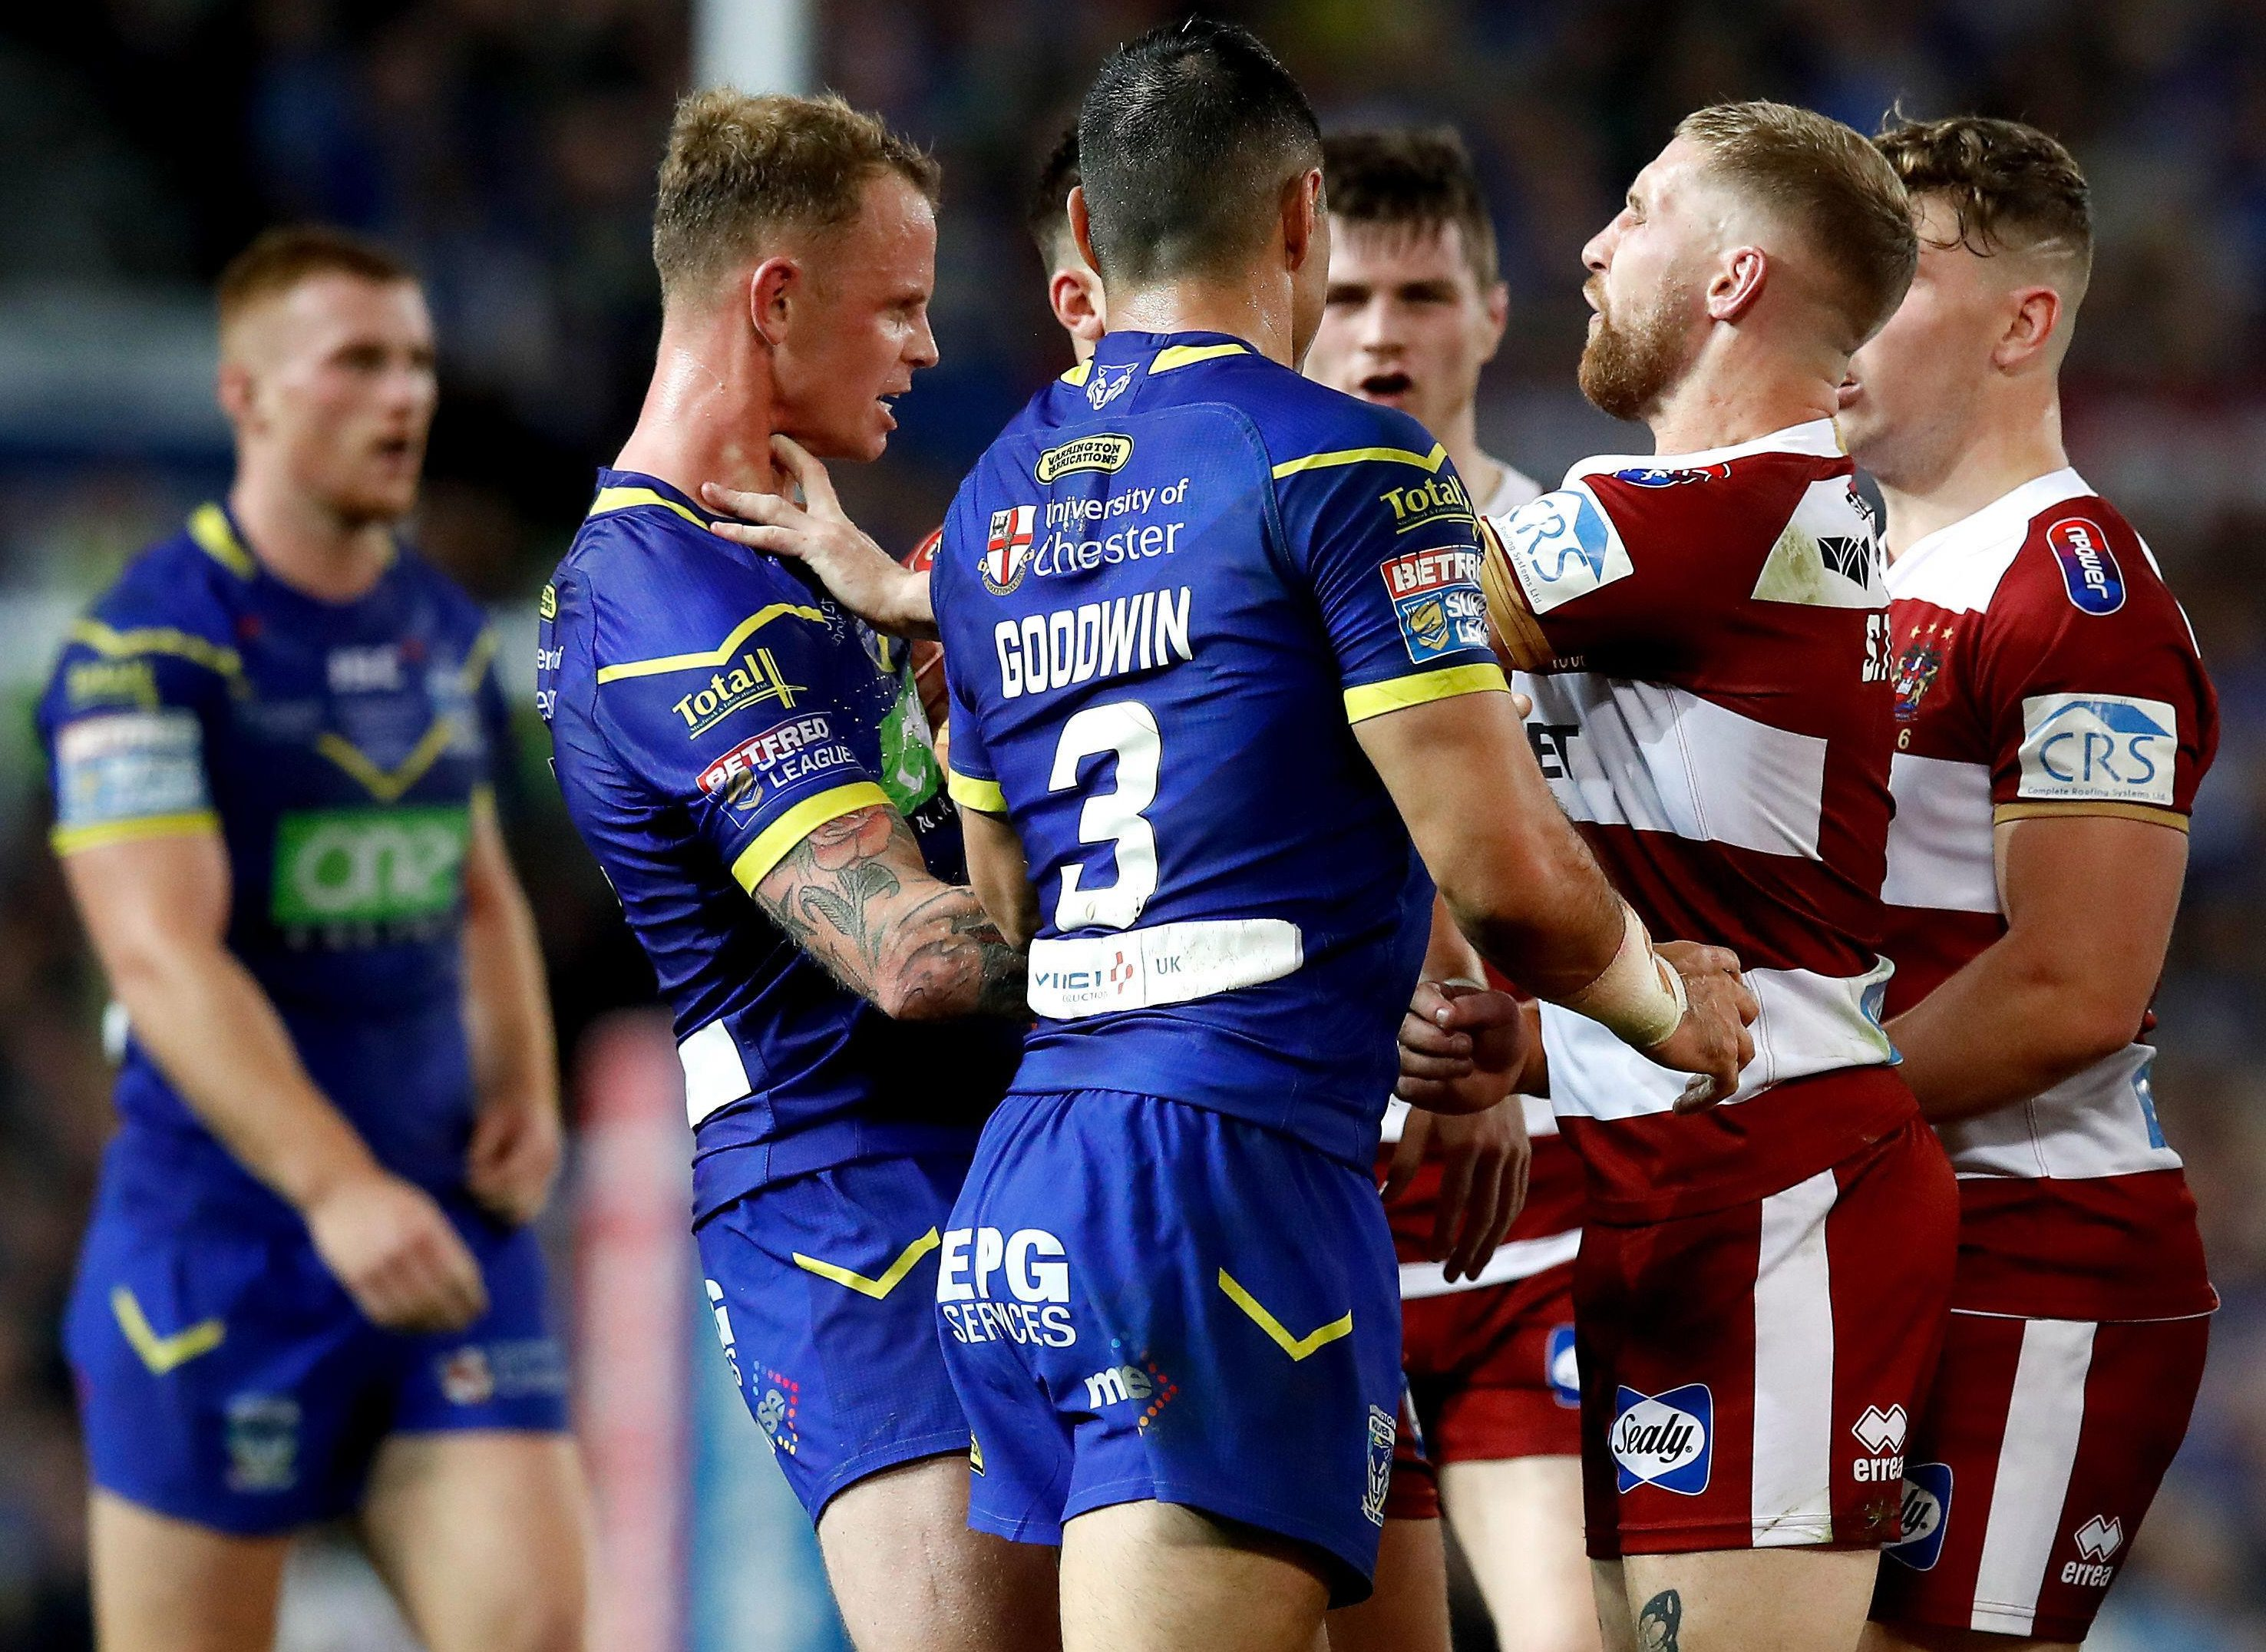 Warrington Wolves' Kevin Brown, left, and Wigan Warriors' Sam Tomkins, right, are caught in a flare-up